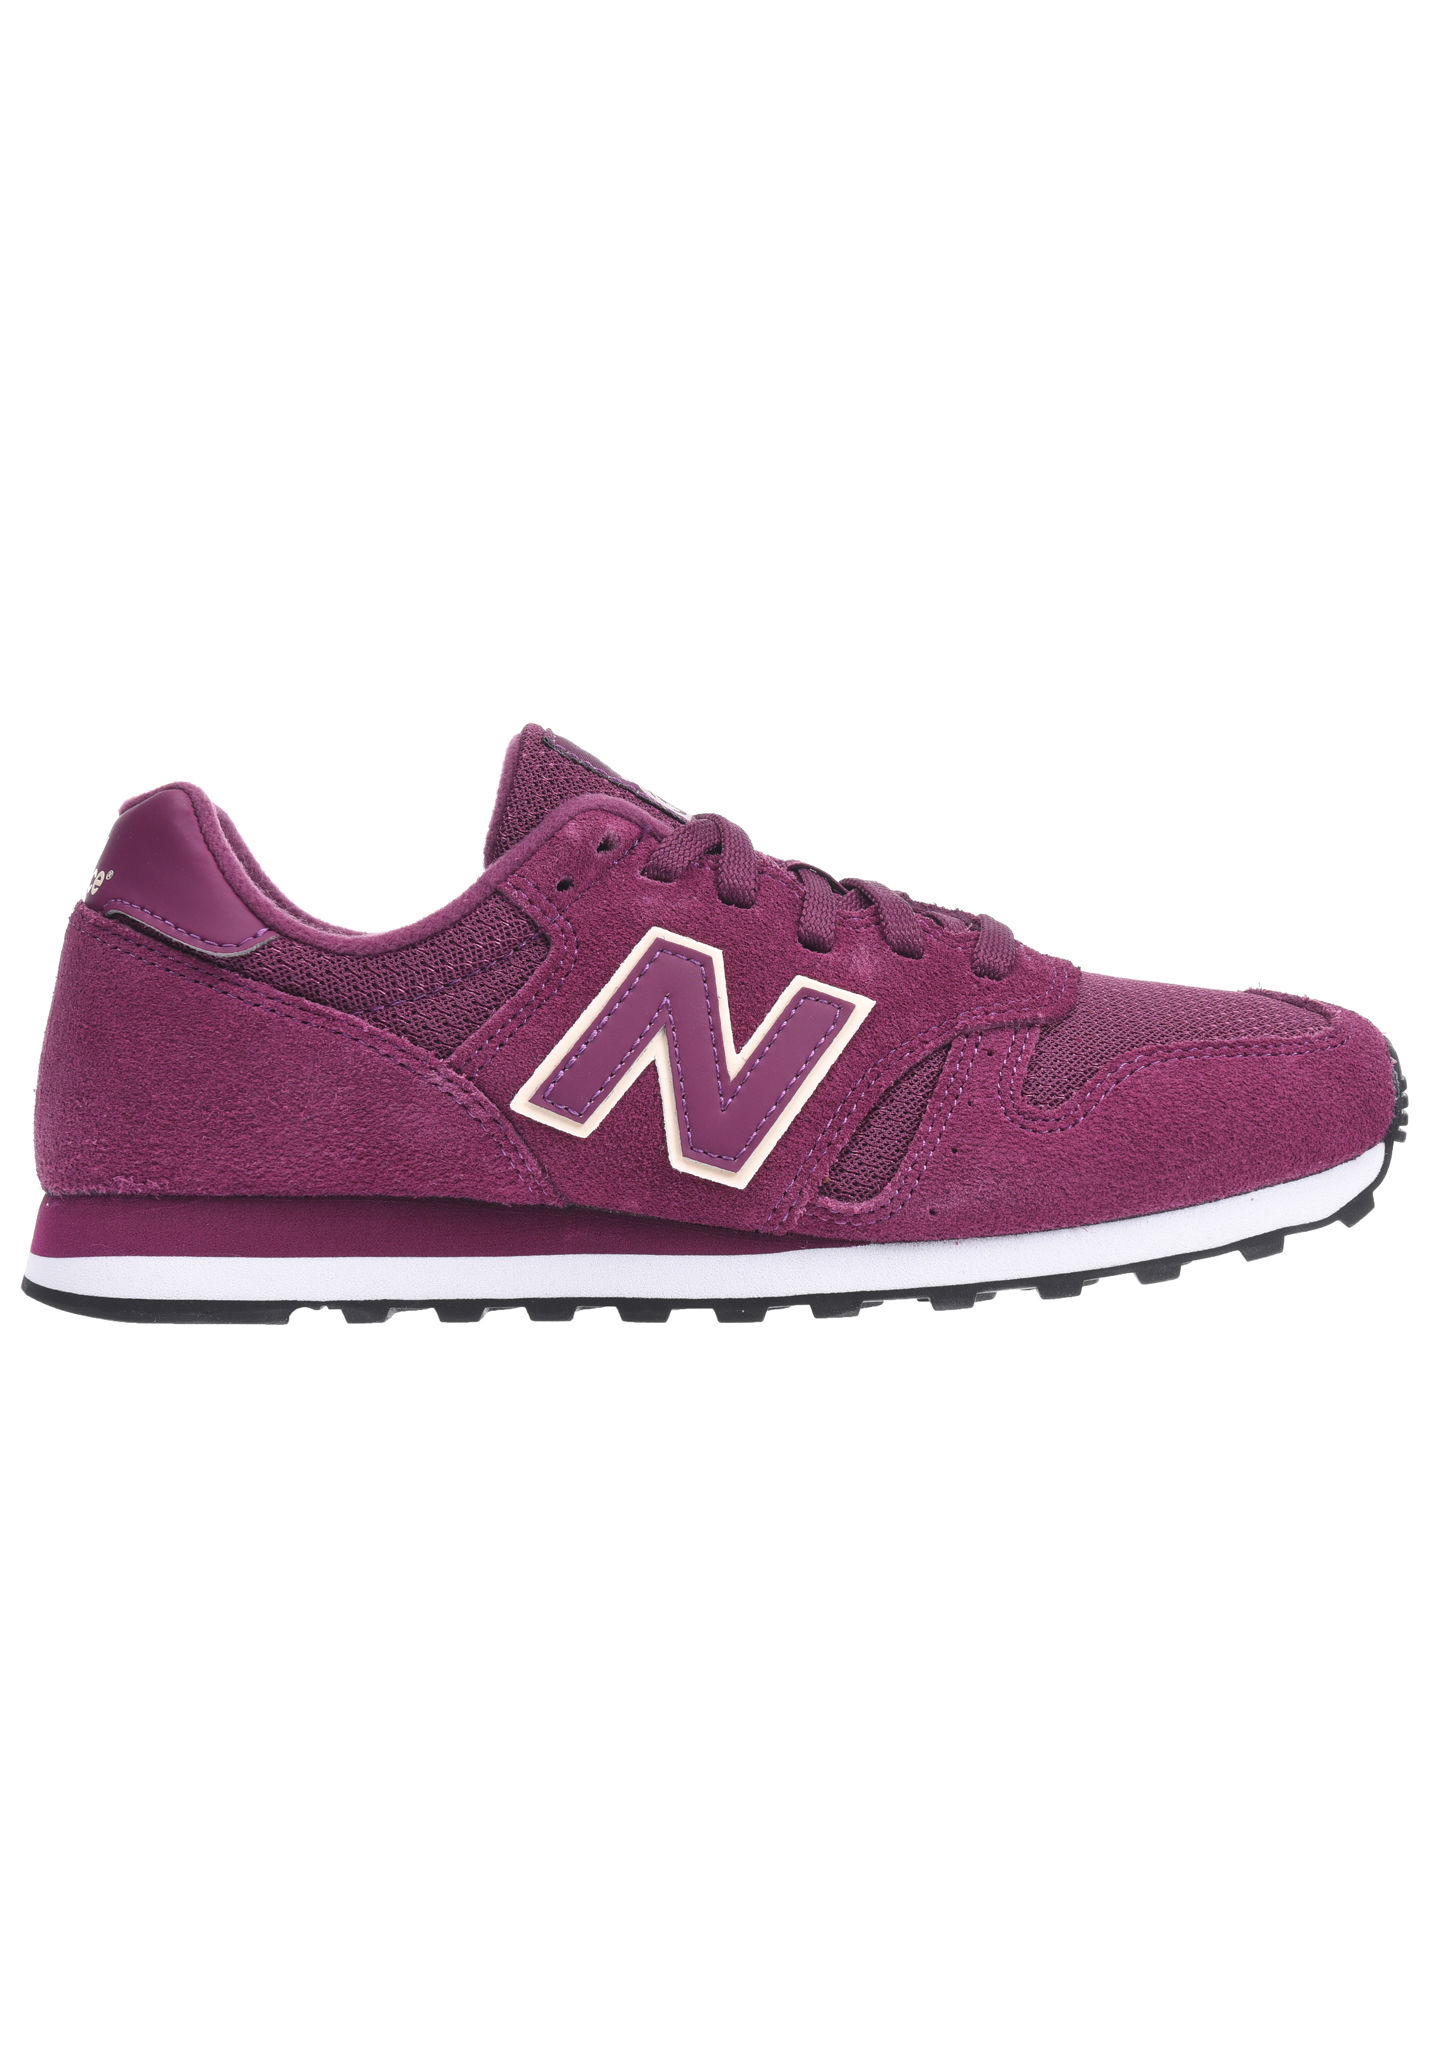 f55a41540f7ca NEW BALANCE WL373 B - Zapatillas para Mujeres - Violeta - Planet Sports